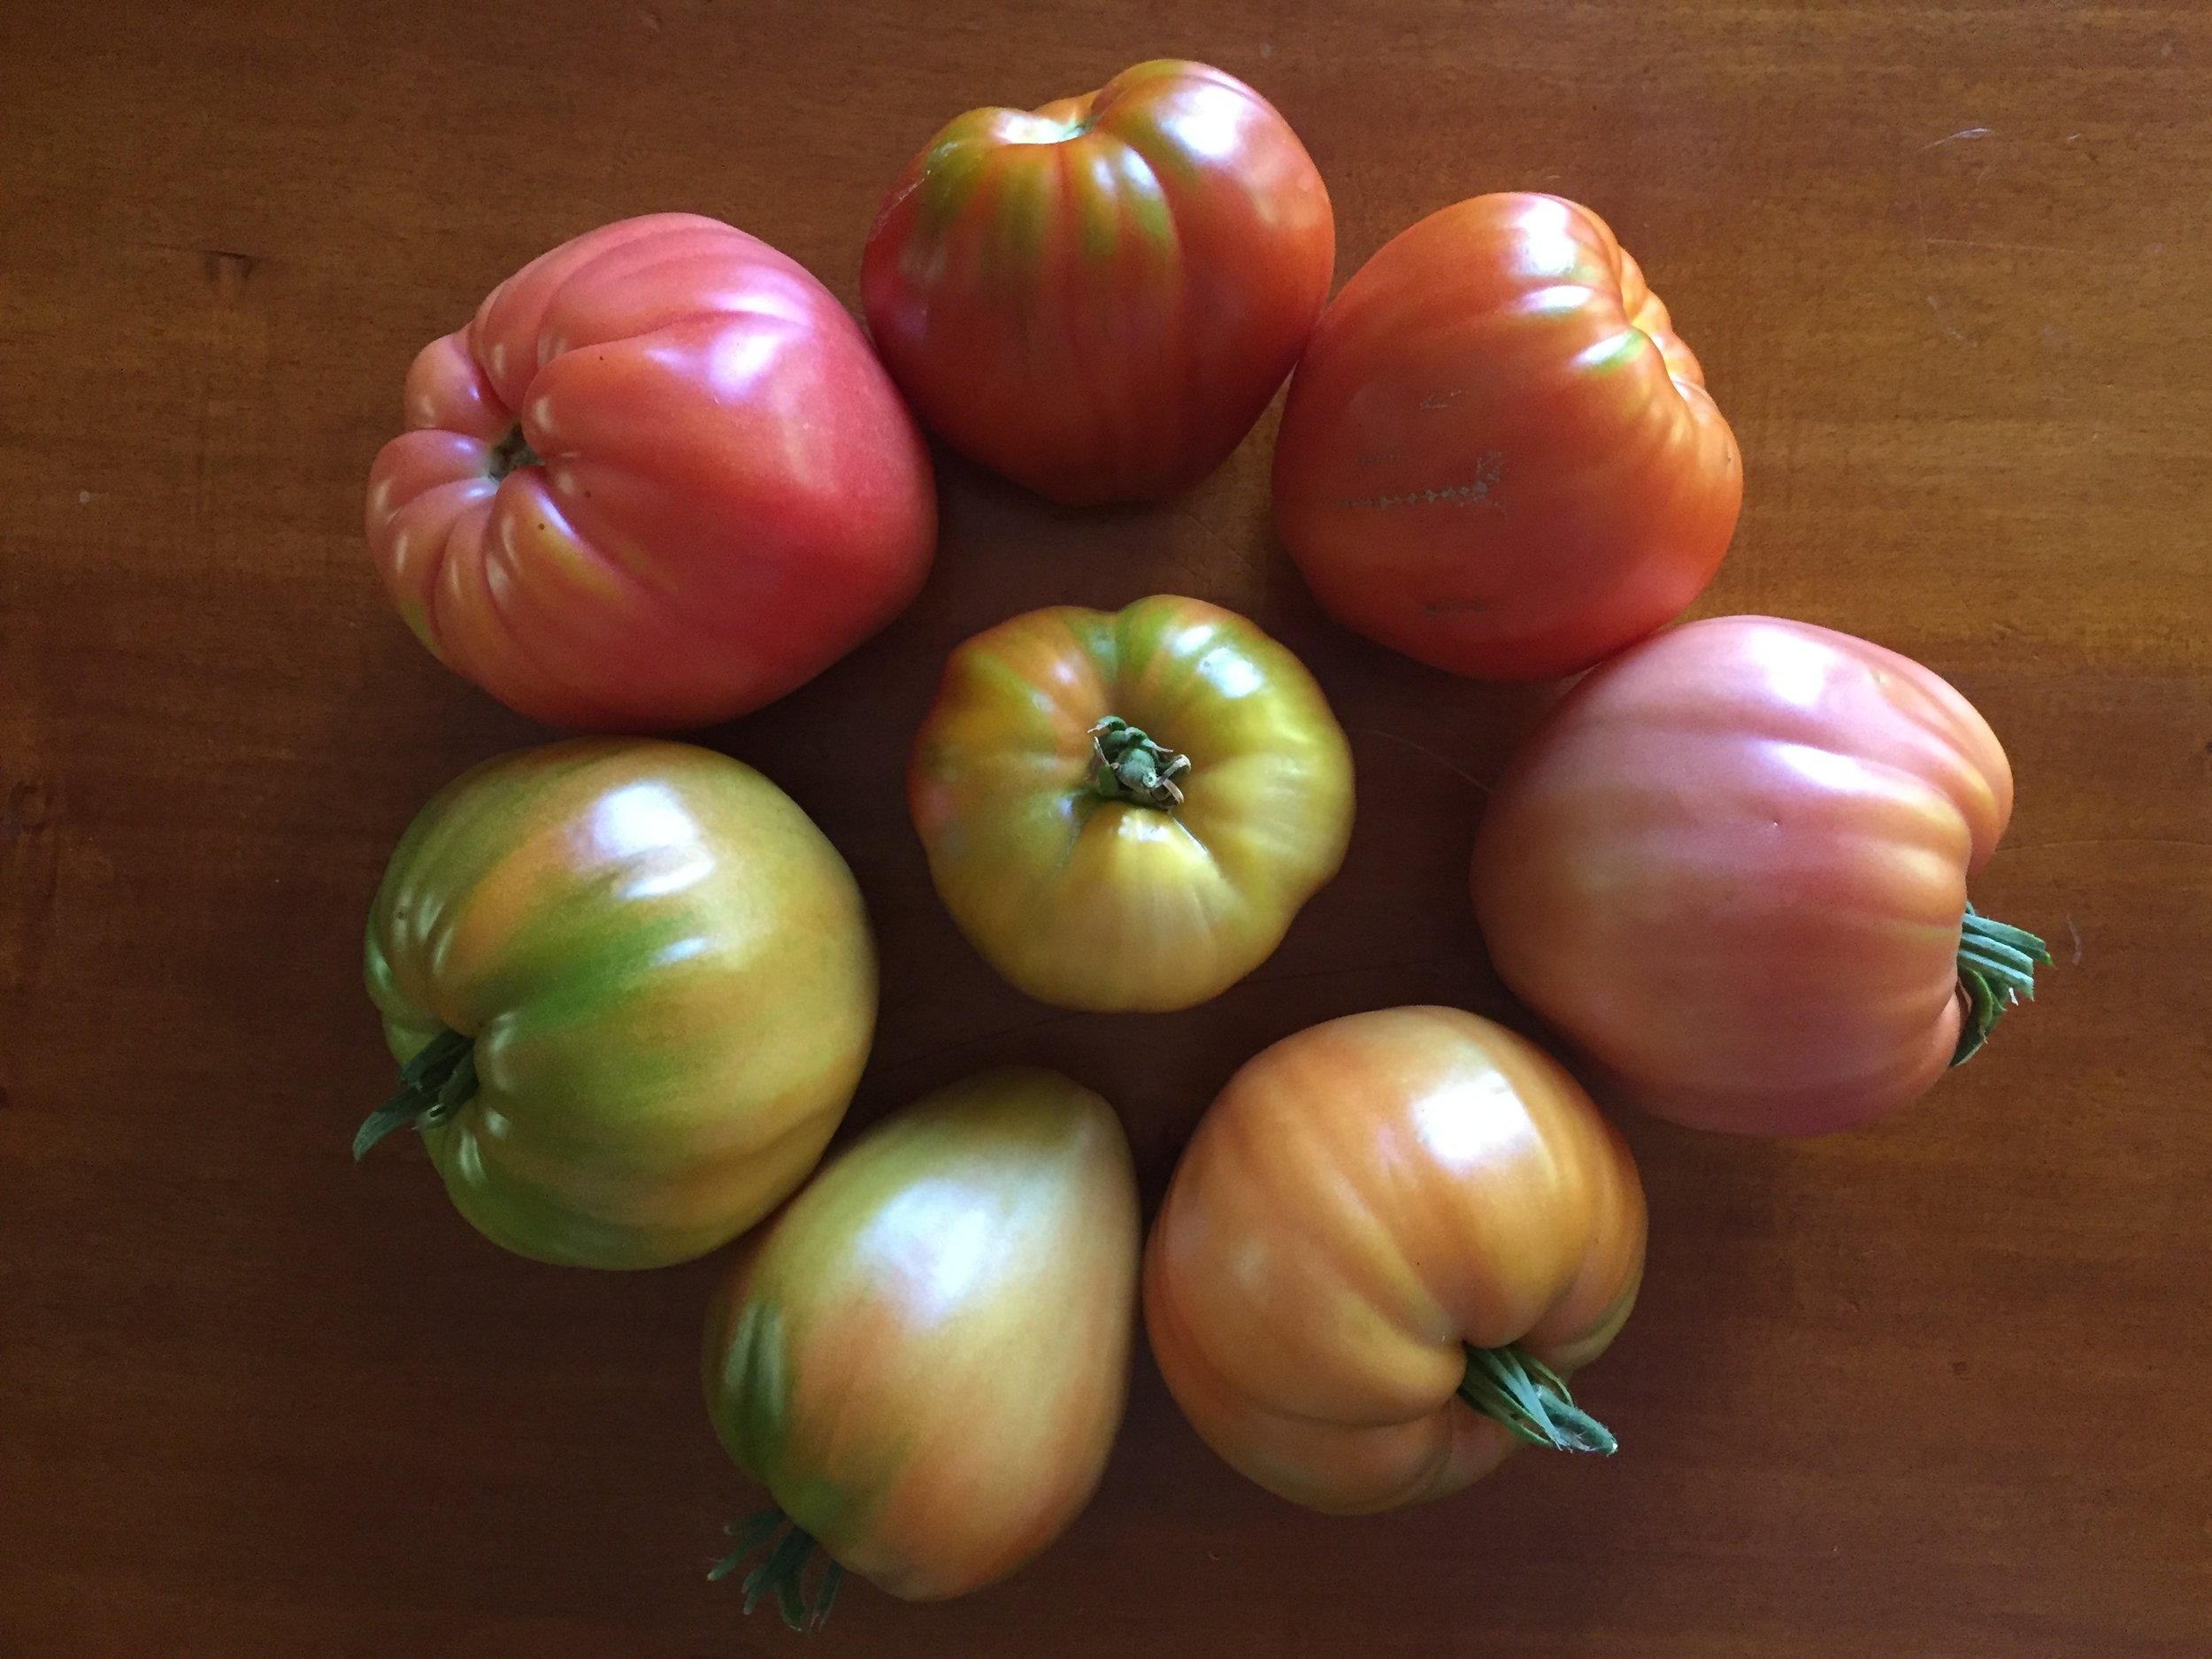 Italian Heirloom and Hungarian Heart tomatoes, in various stages of ripening